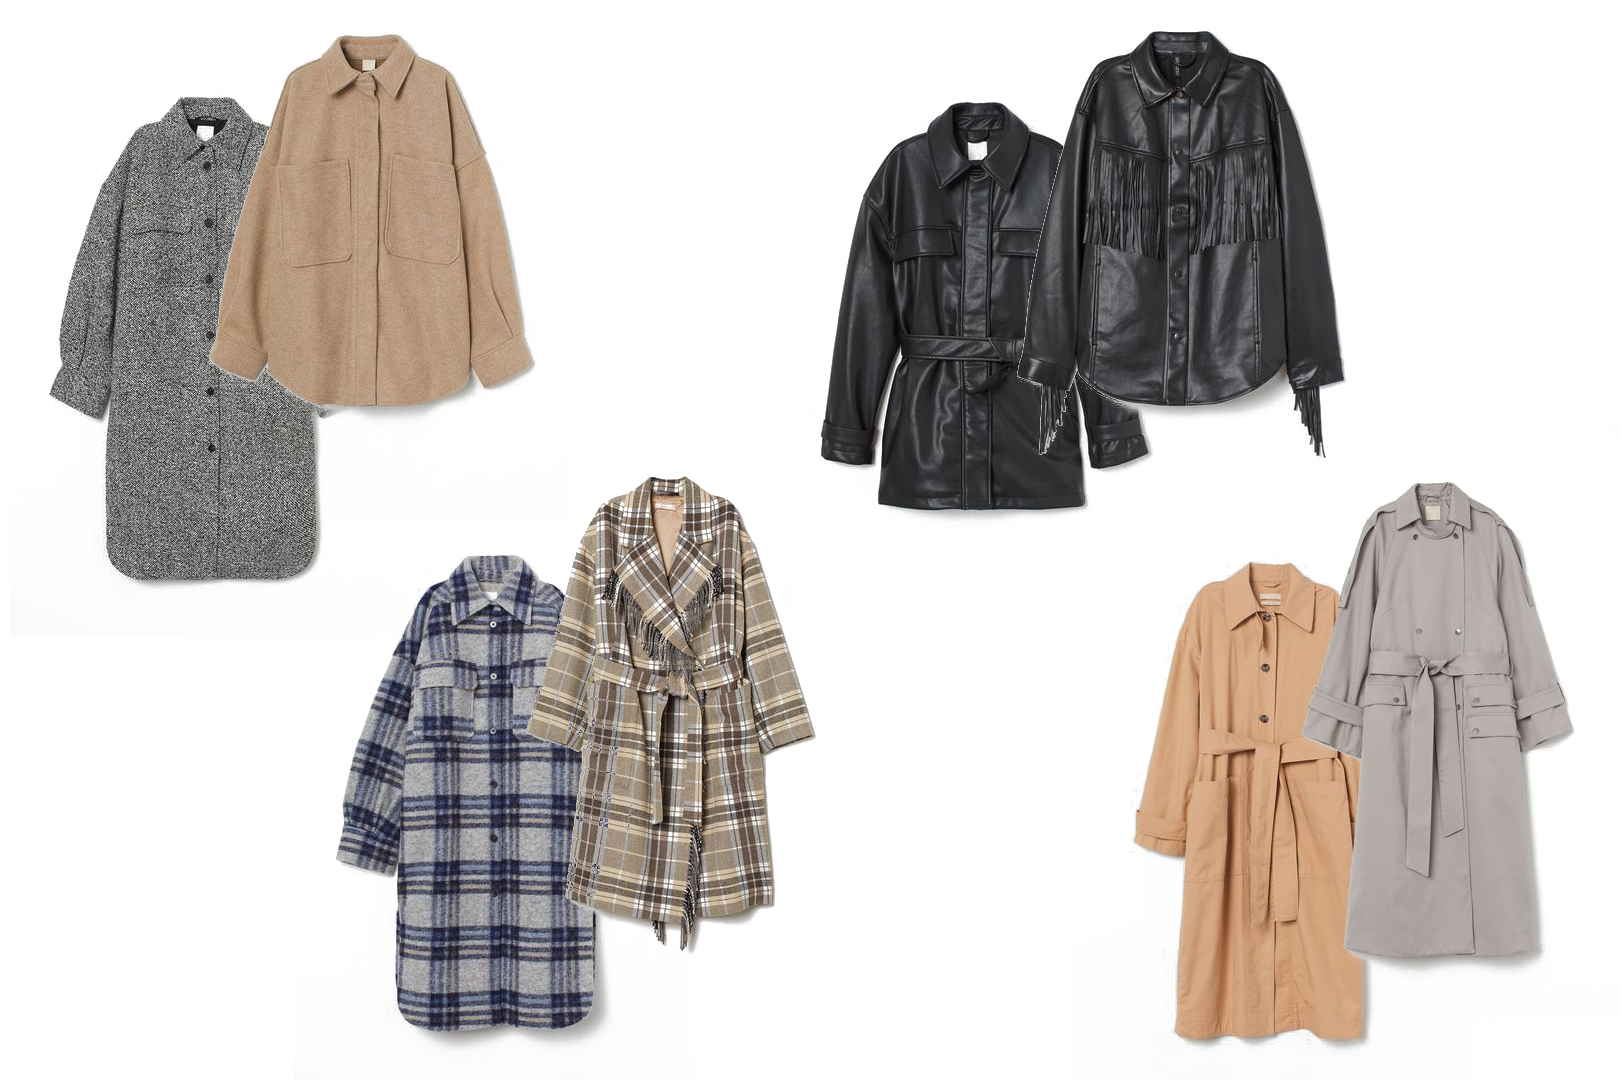 Fall Jackets & Coats 2020. Fashion Blogger Girl by Style Blog Heartfelt Hunt. Fashion girl showing her favorite fall jackets & coats for 2020.